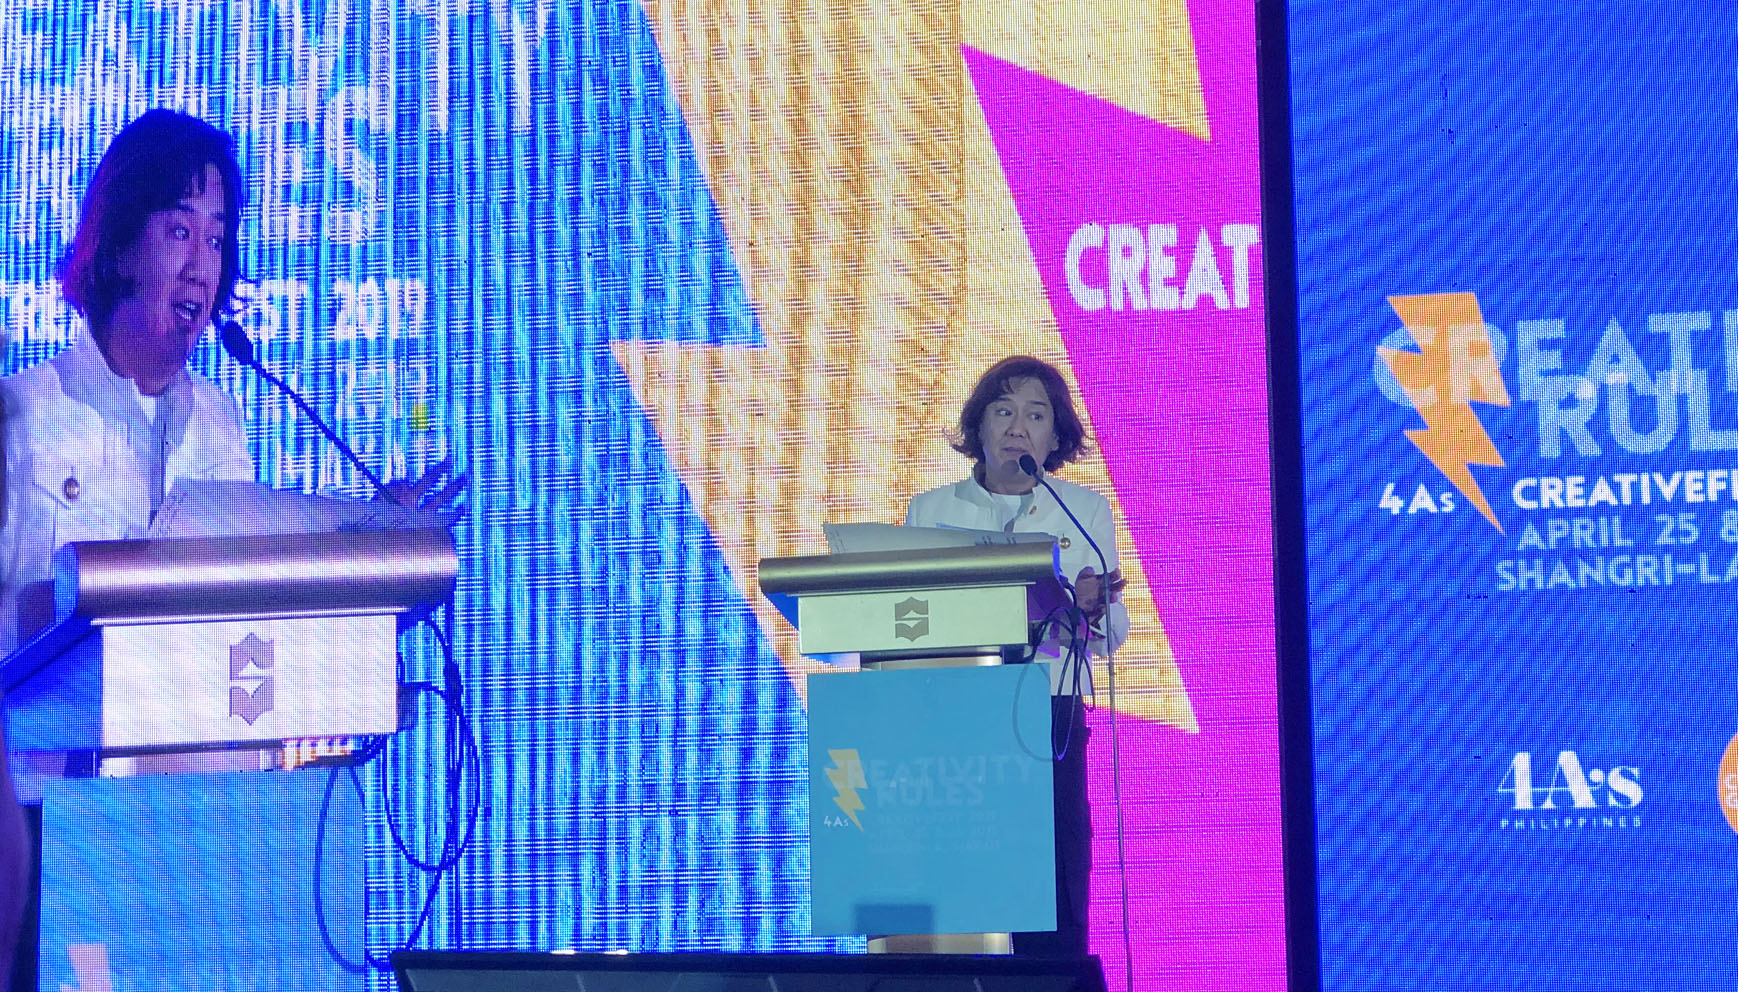 Creativefest in Manila: A packed two days of outstanding presentations and panel discussions